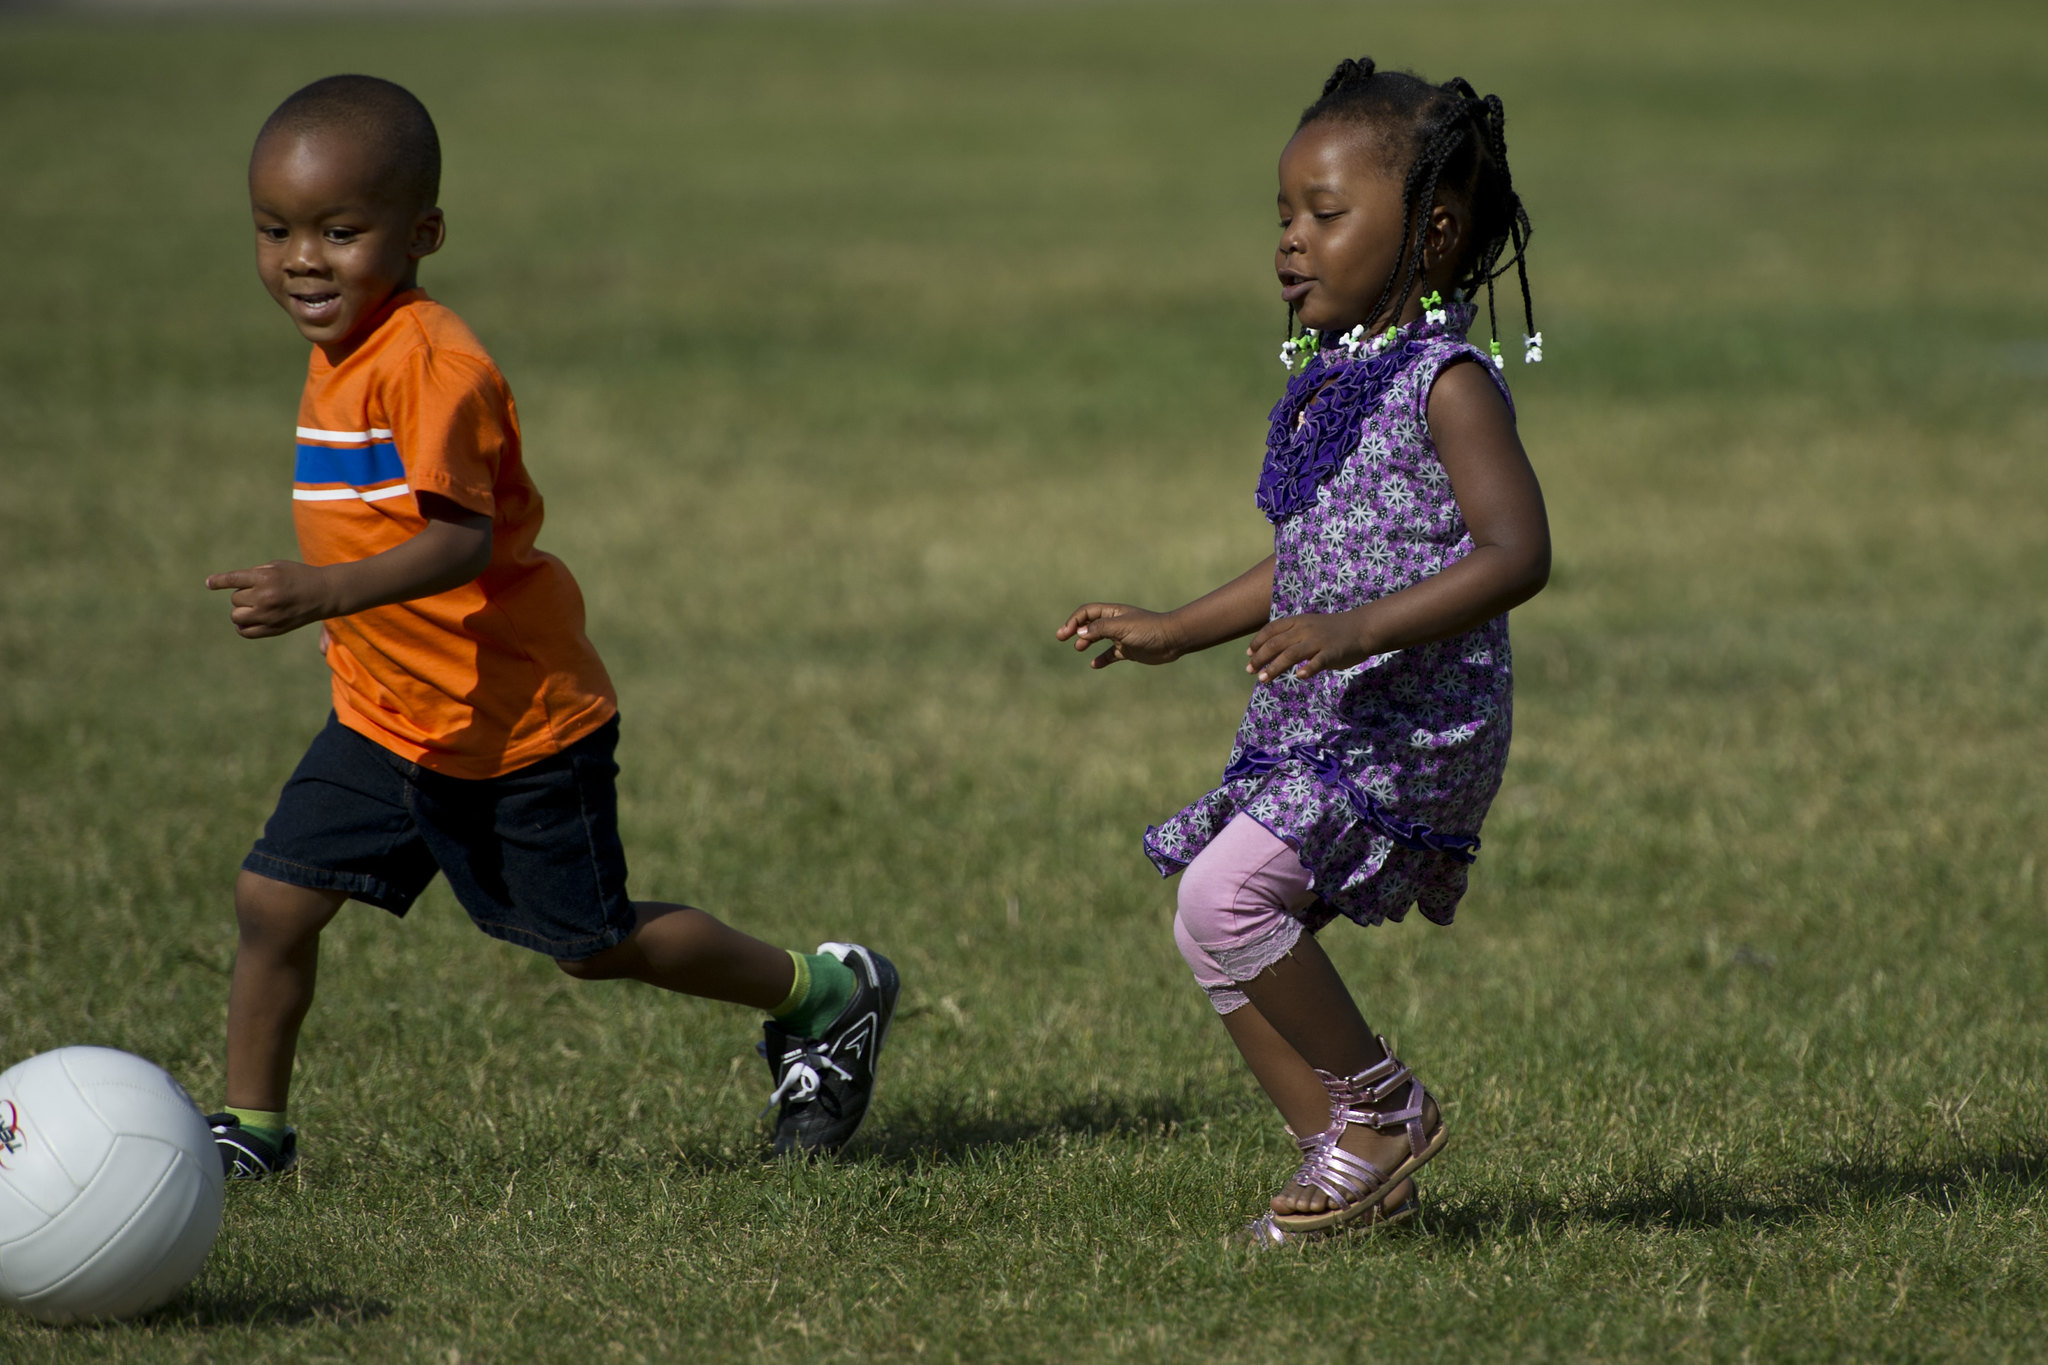 Sports, Physical Activity and Recreation